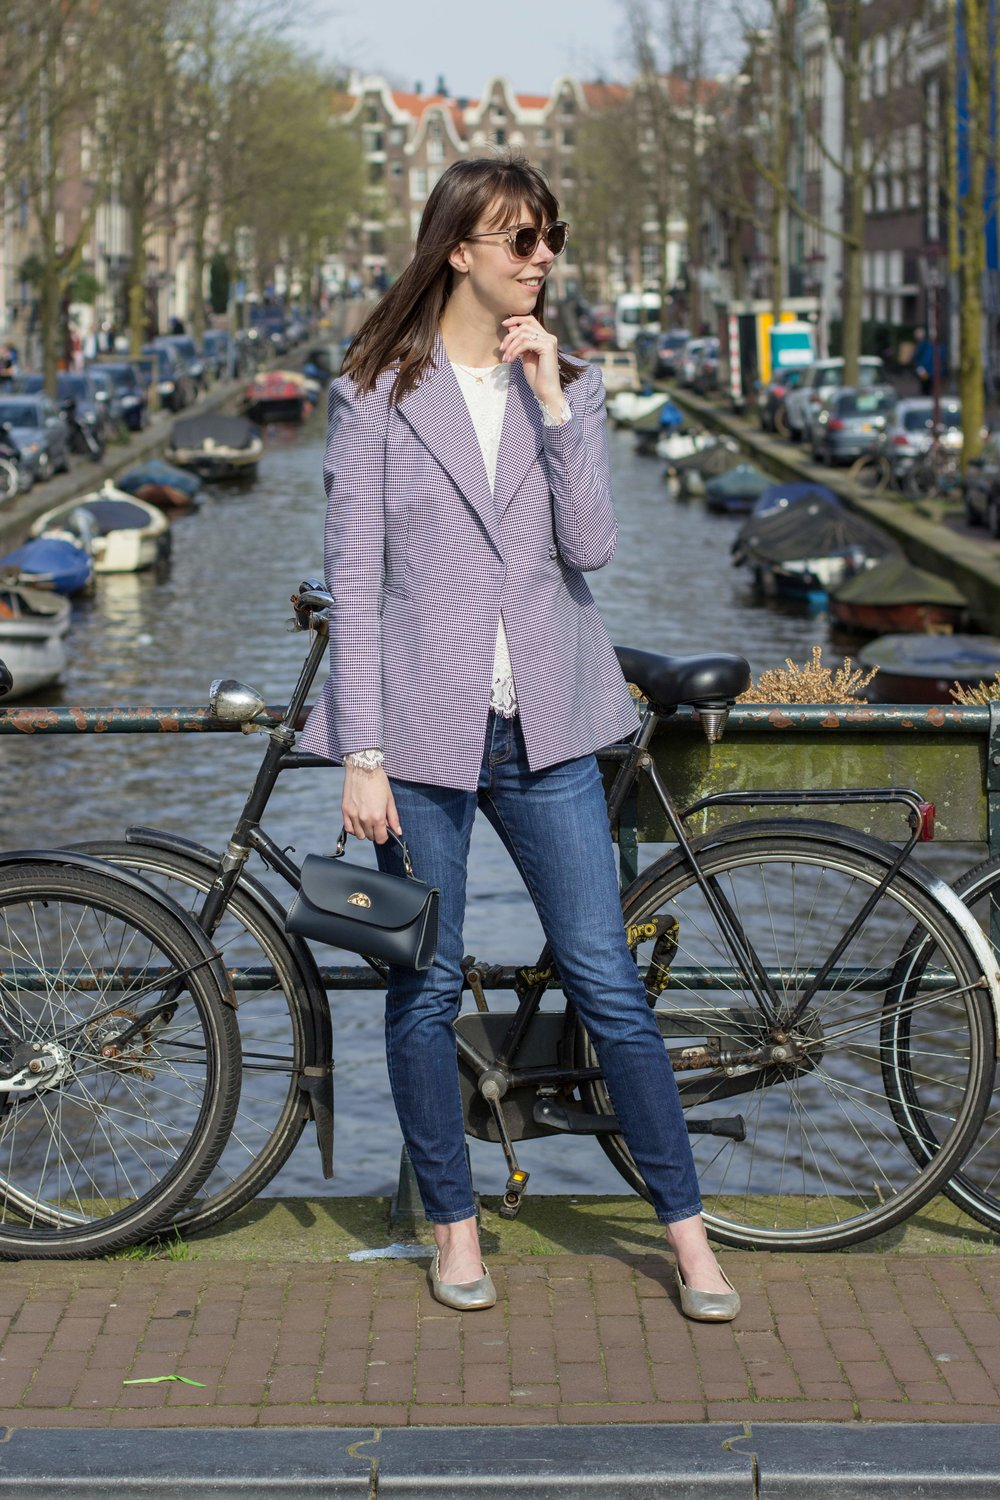 Wearing the checked blue and white blazer for spring over a lace top, delicate accessories and a Cambridge Satchel Company Daisy bag for spring in Amsterdam.